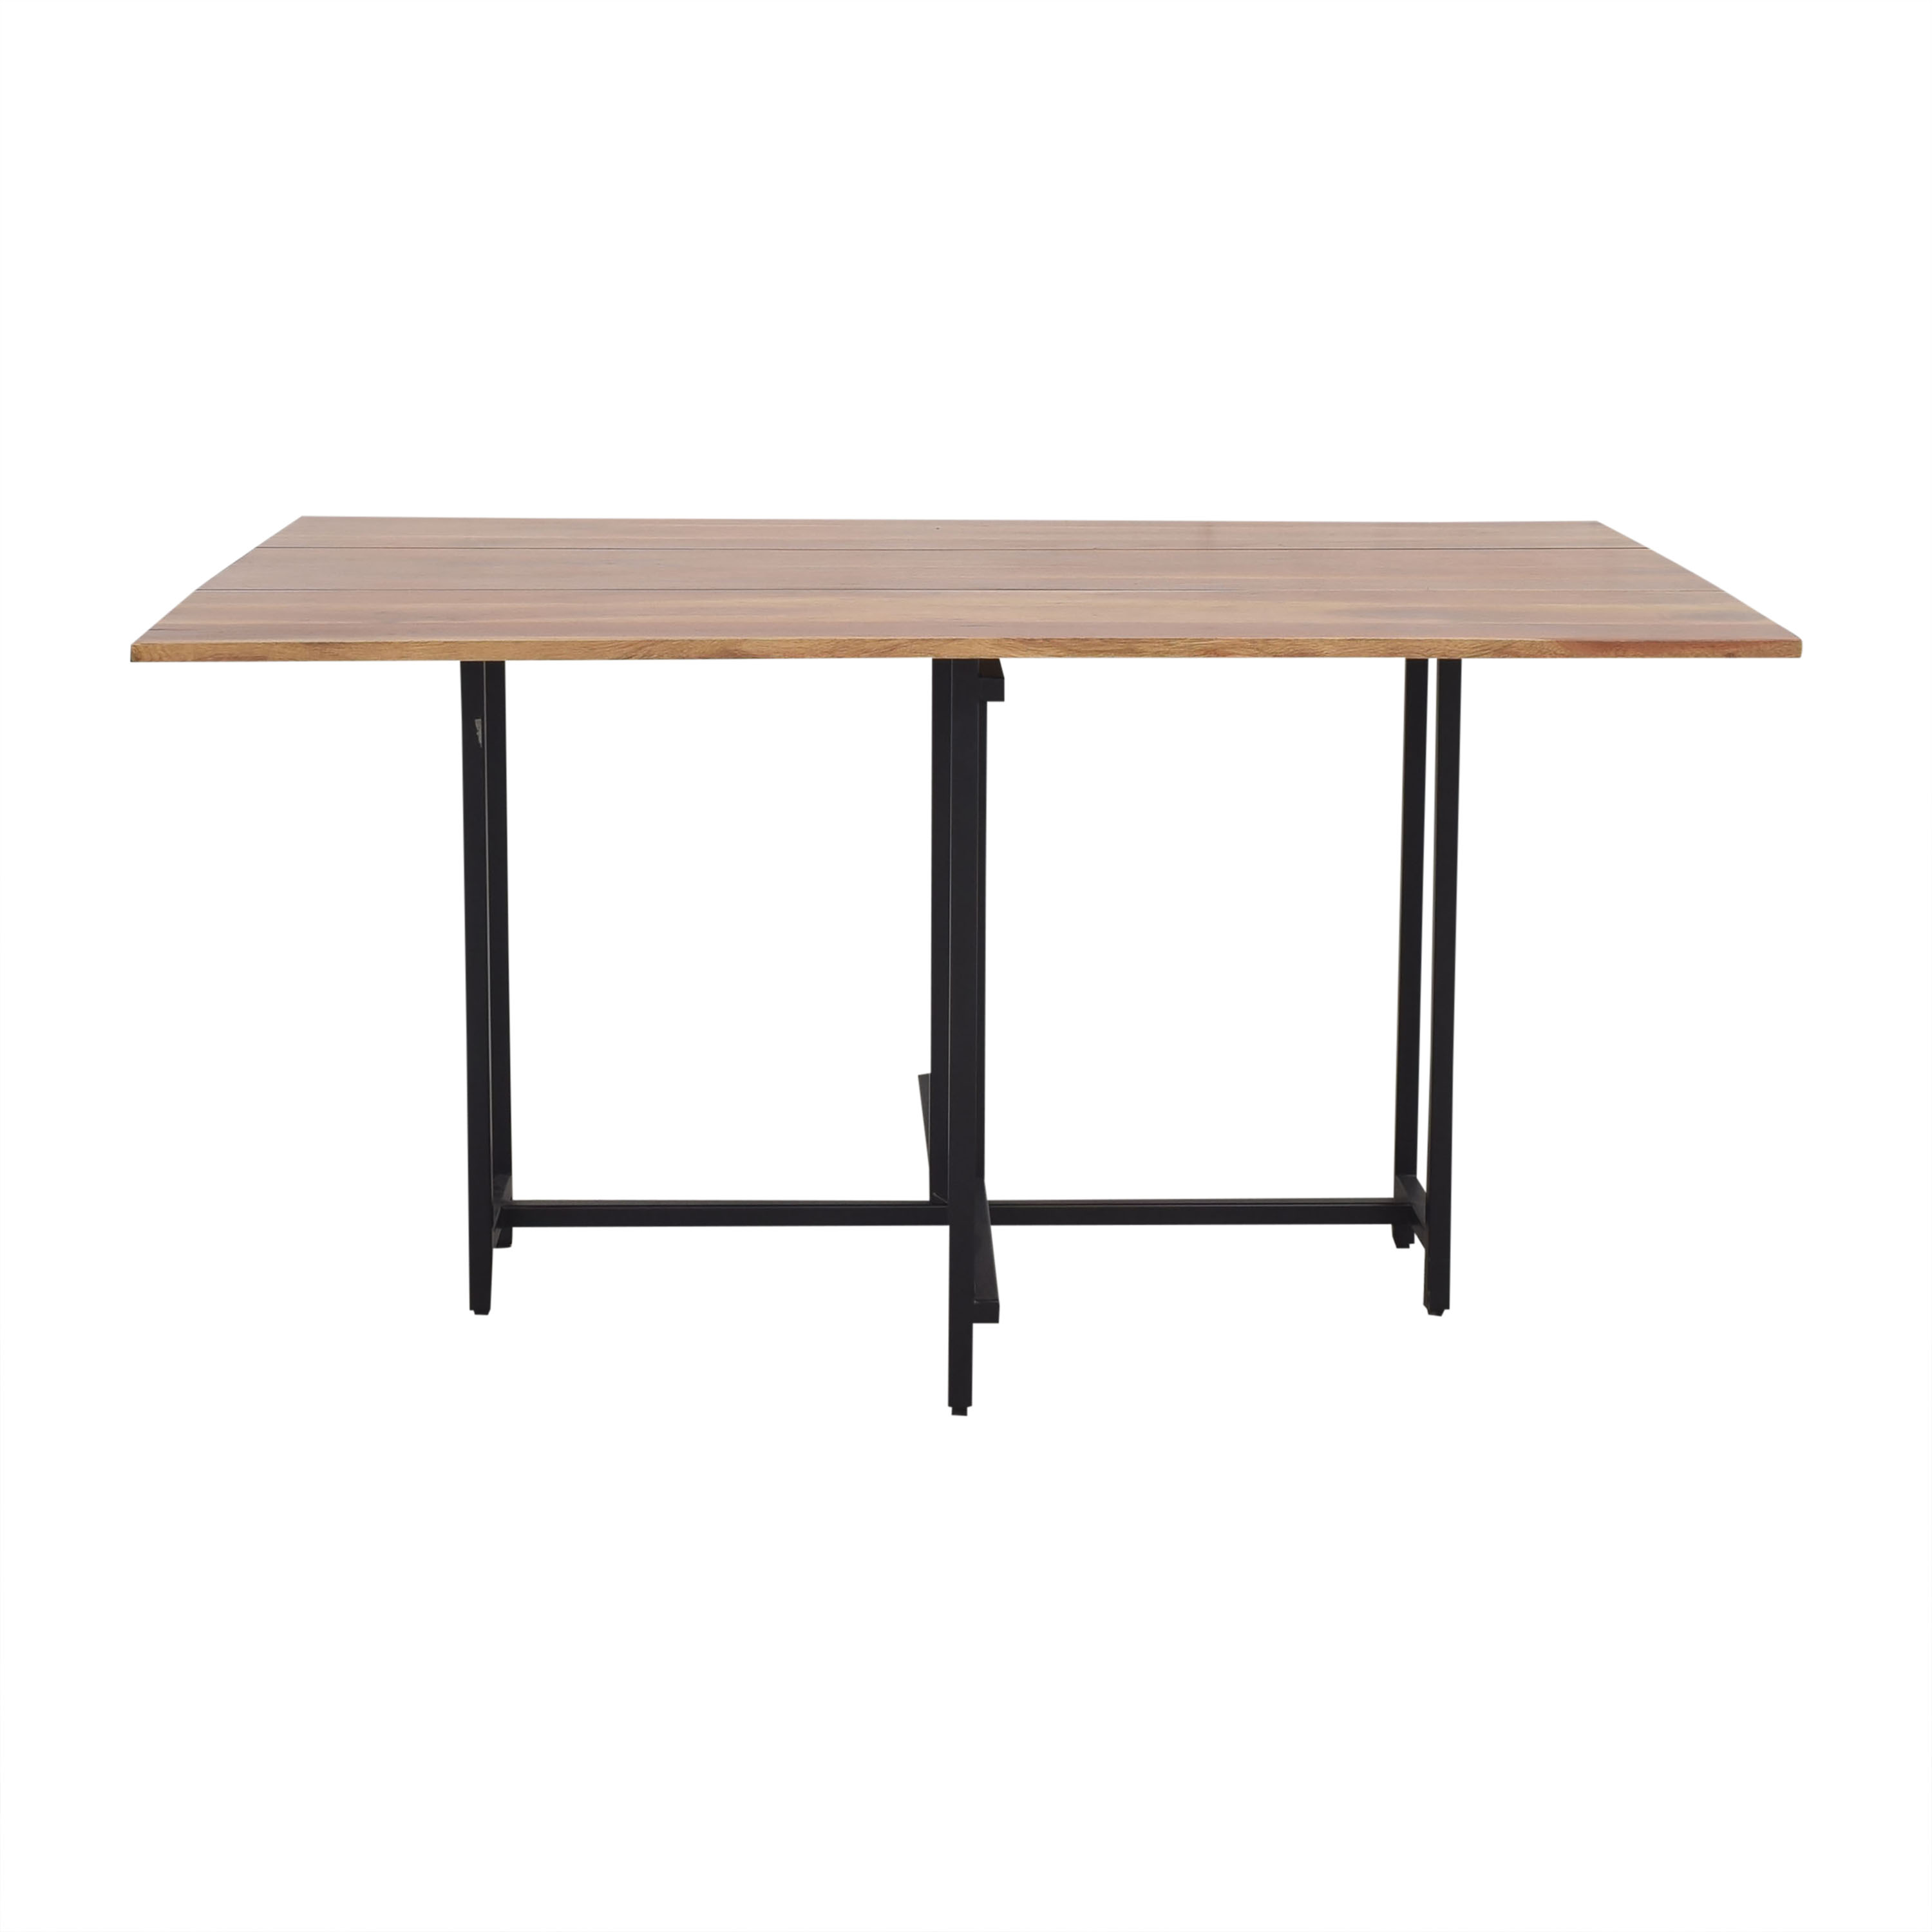 Crate & Barrel Origami Drop Leaf Rectangular Dining Table / Dinner Tables